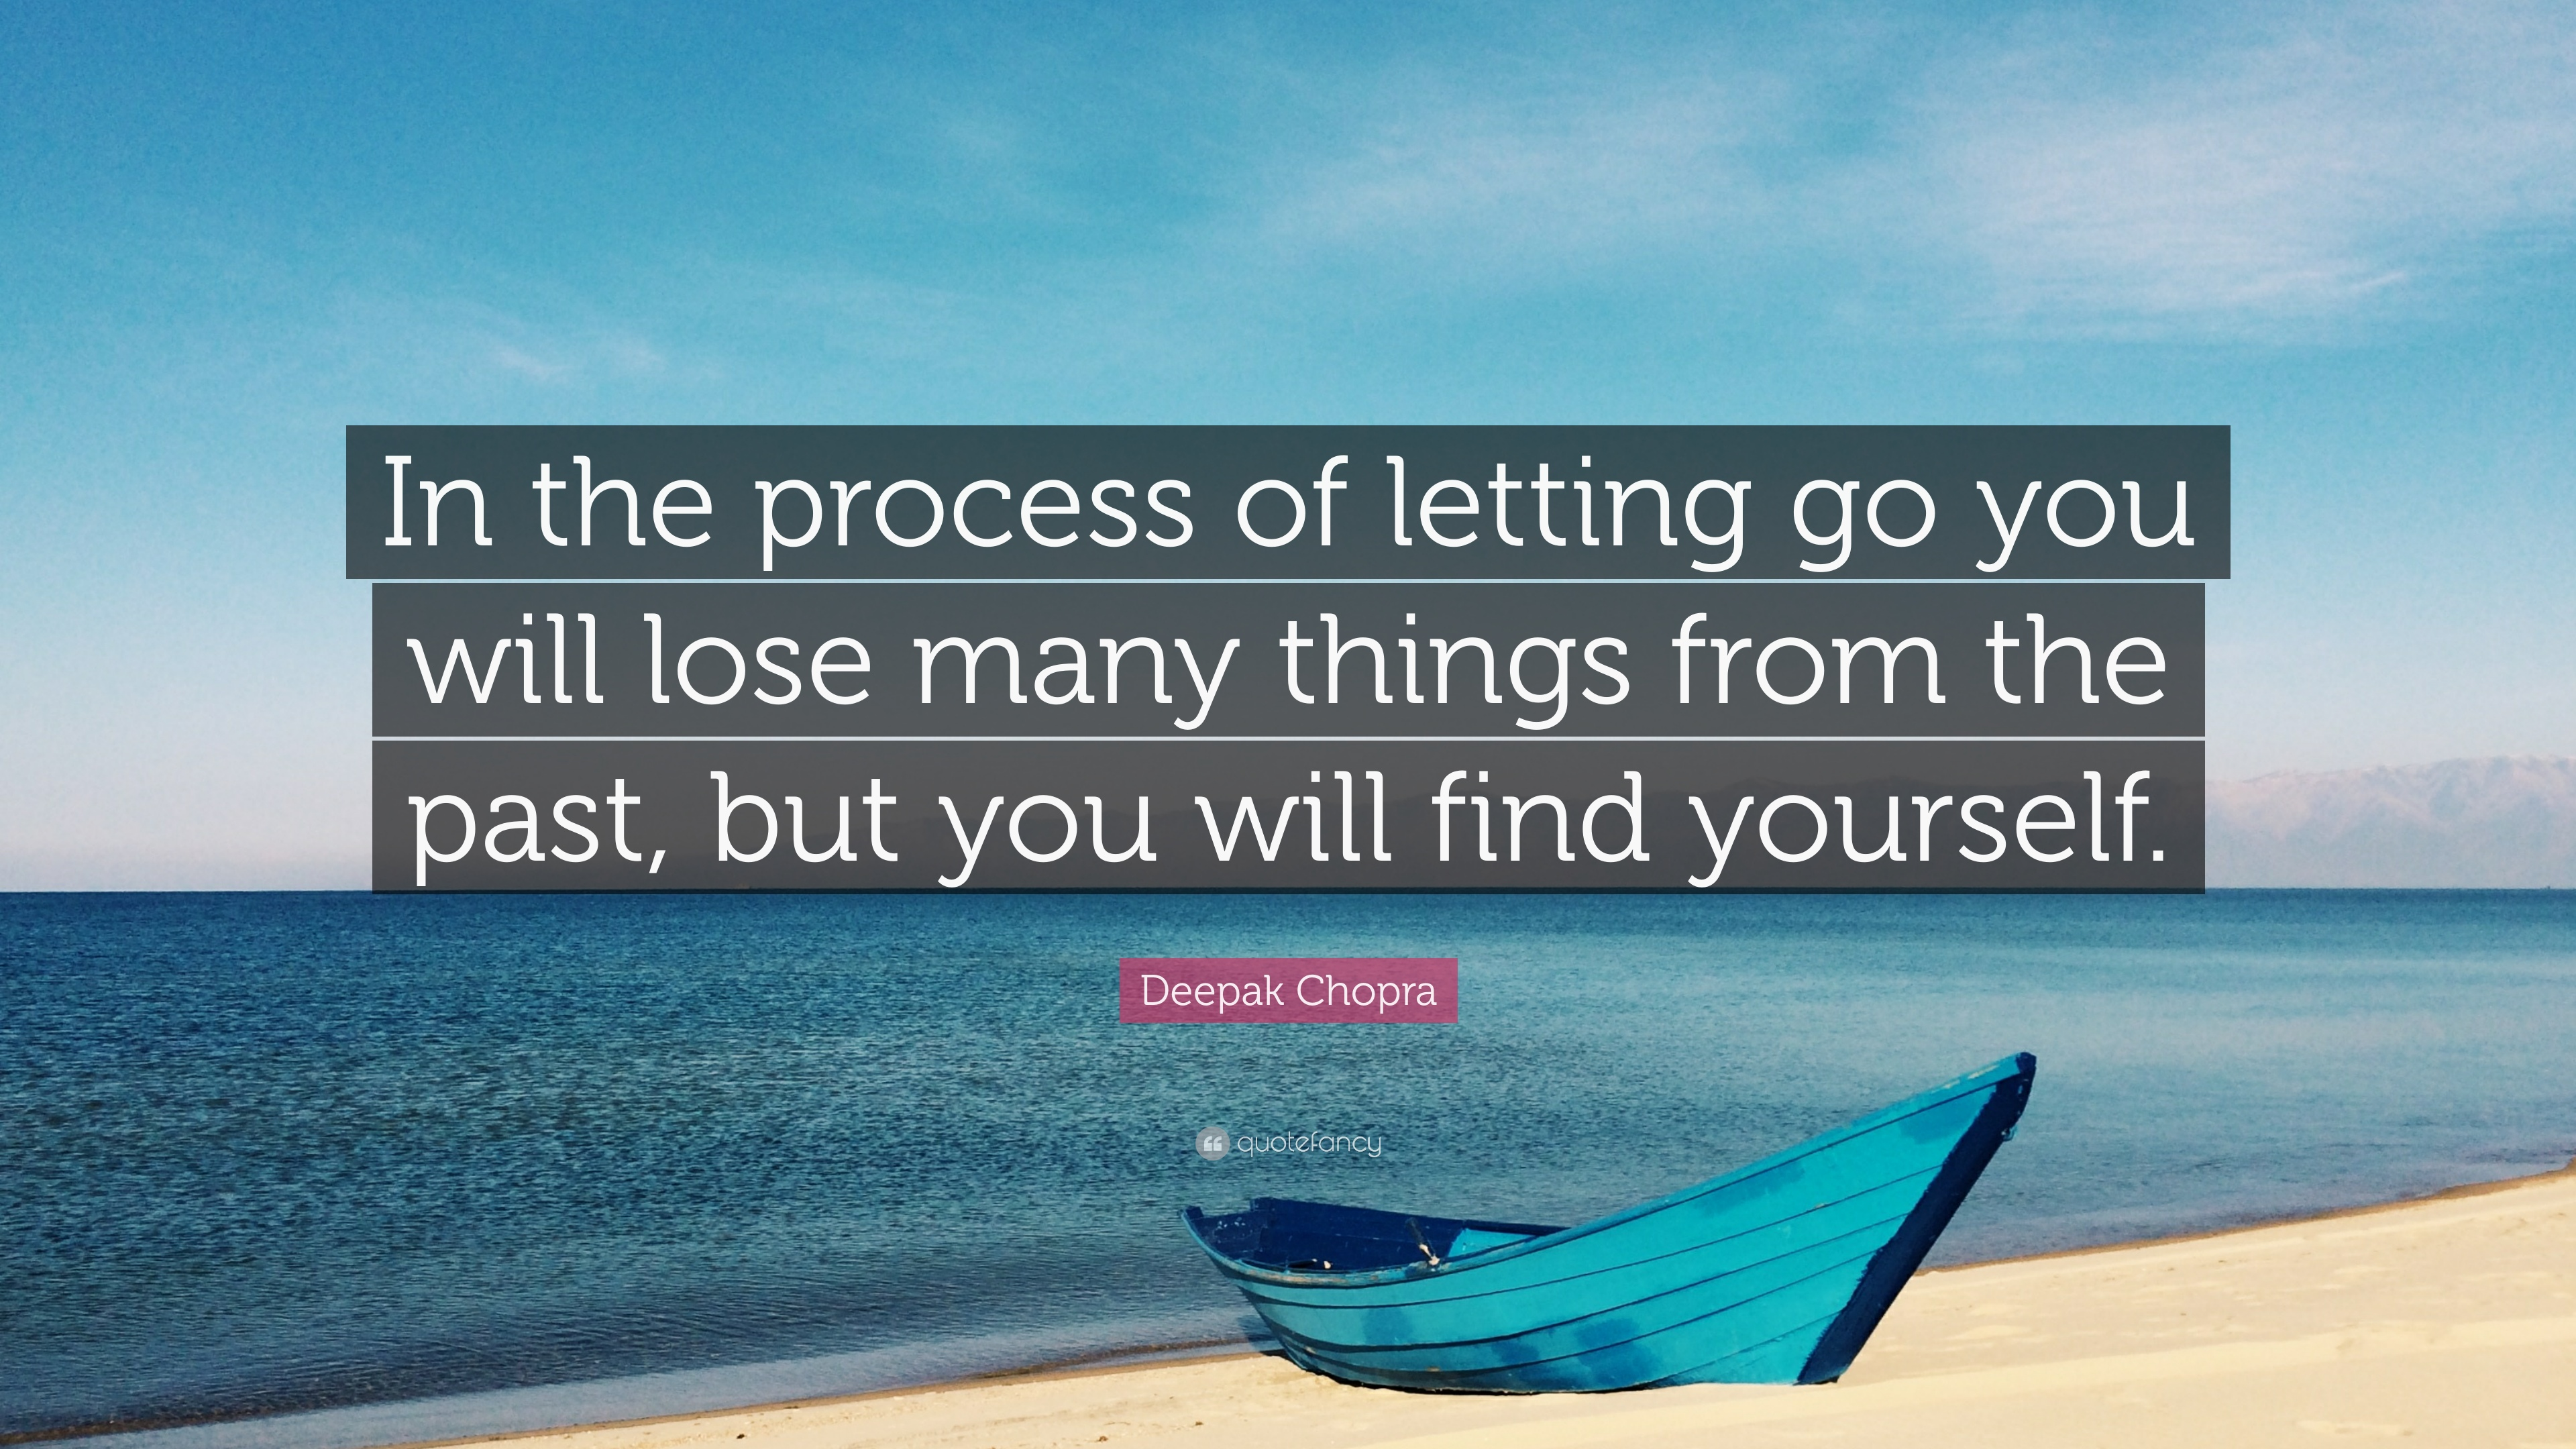 Good Deepak Chopra Quote: U201cIn The Process Of Letting Go You Will Lose Many Things